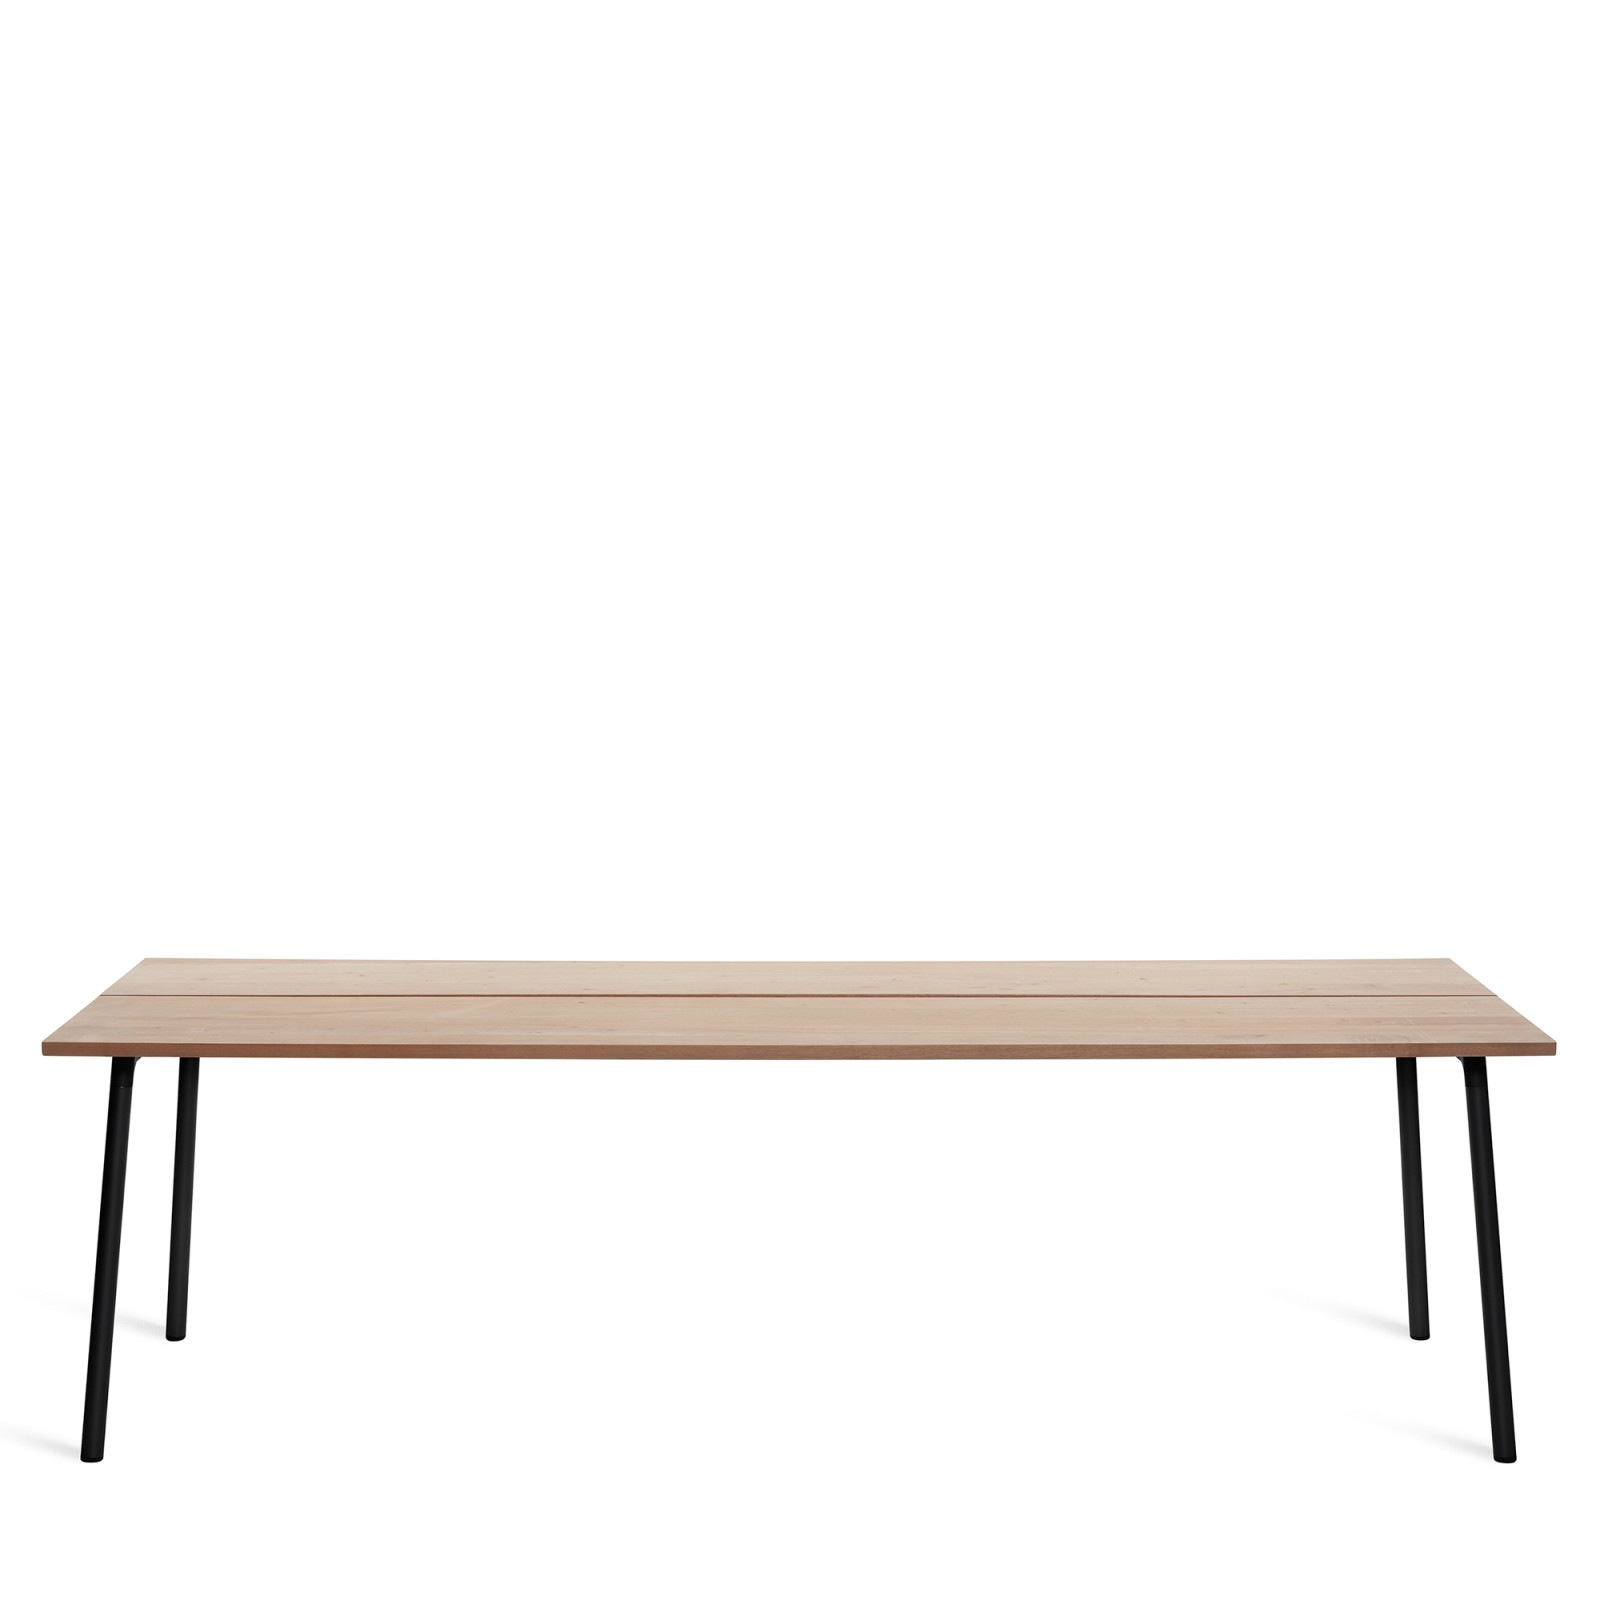 Run Dining Table Rectangular 244cm, Black Powder Coated, Cedar